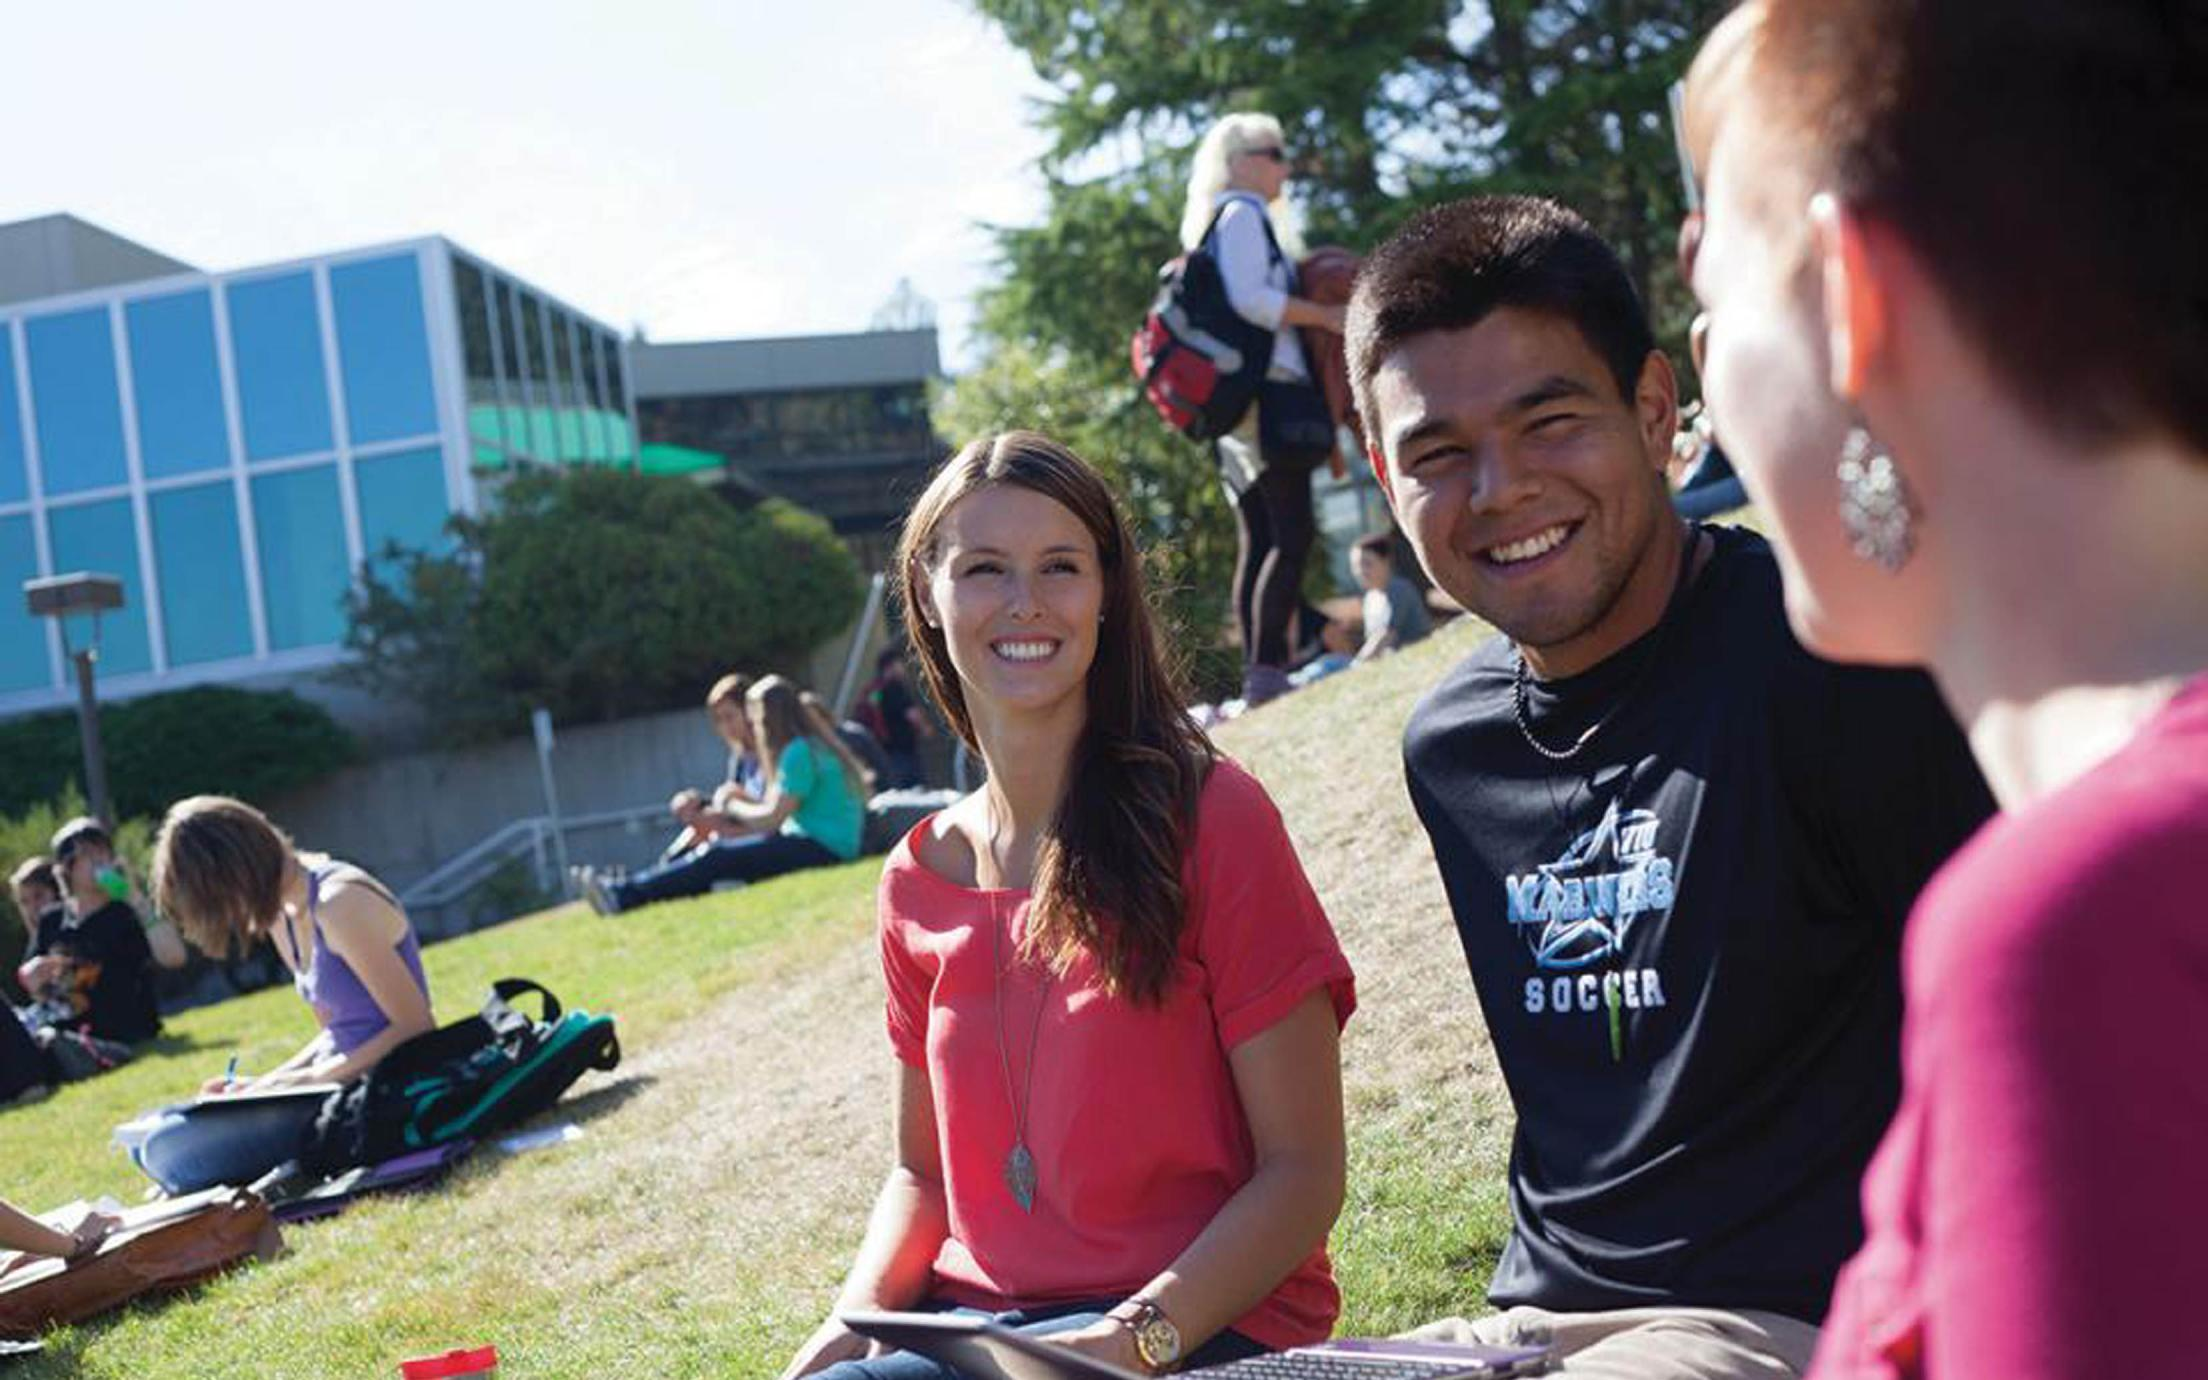 Students of VIU's sport science courses gathering at VIU's campus